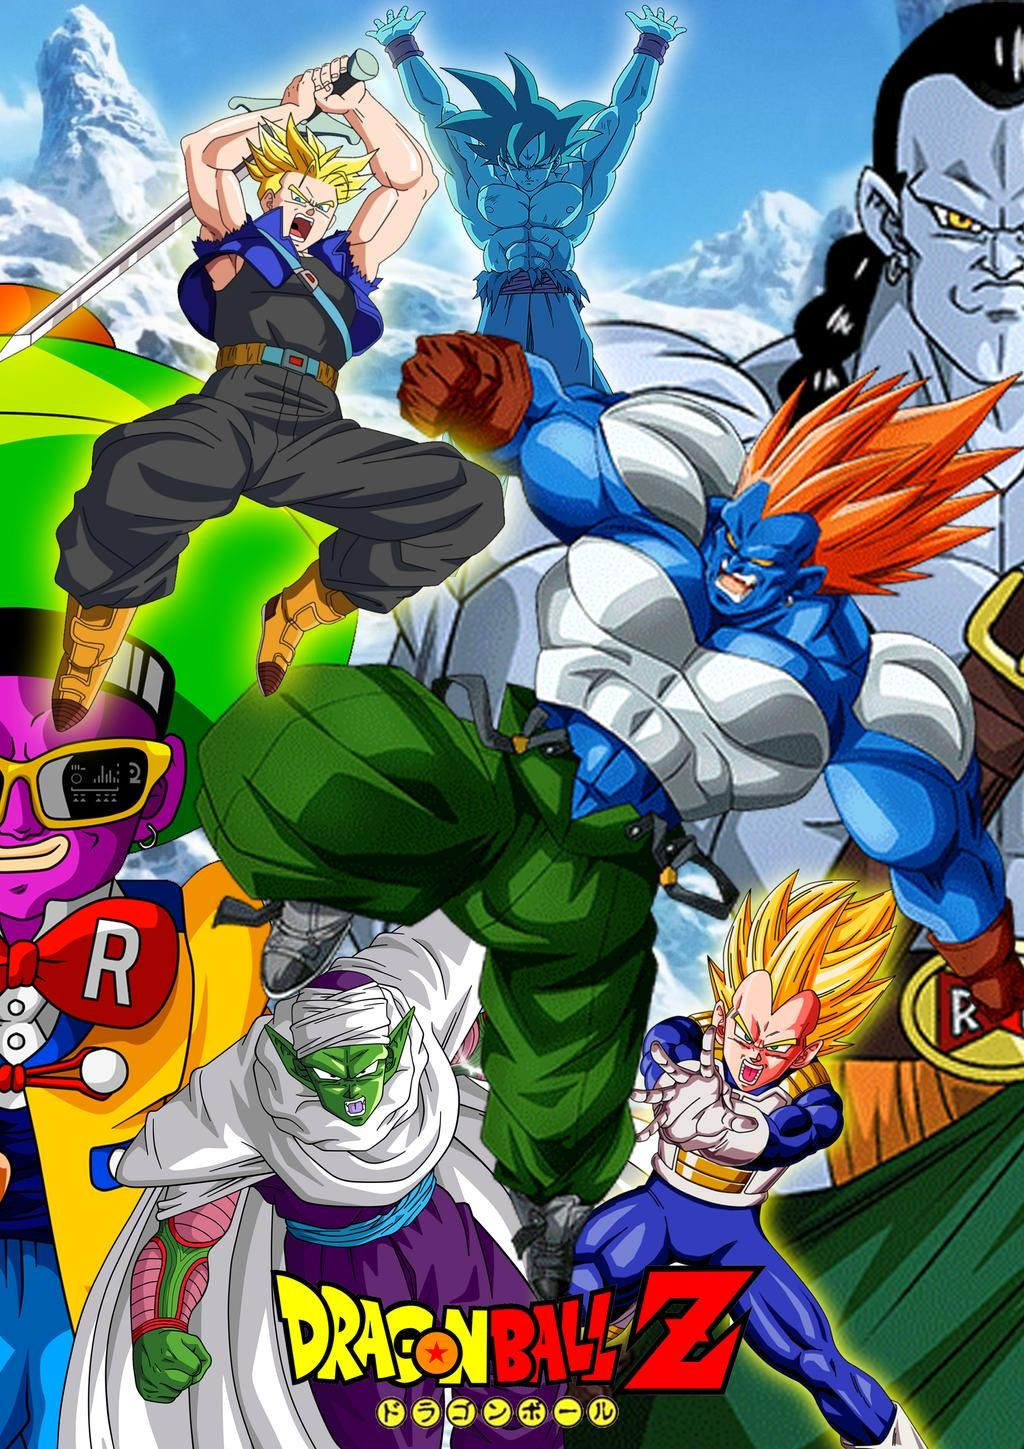 Dbz Super Android 13 By Ariezgao On Deviantart Anime Dragon Ball Super Anime Dragon Ball Goku Dragon Ball Wallpapers